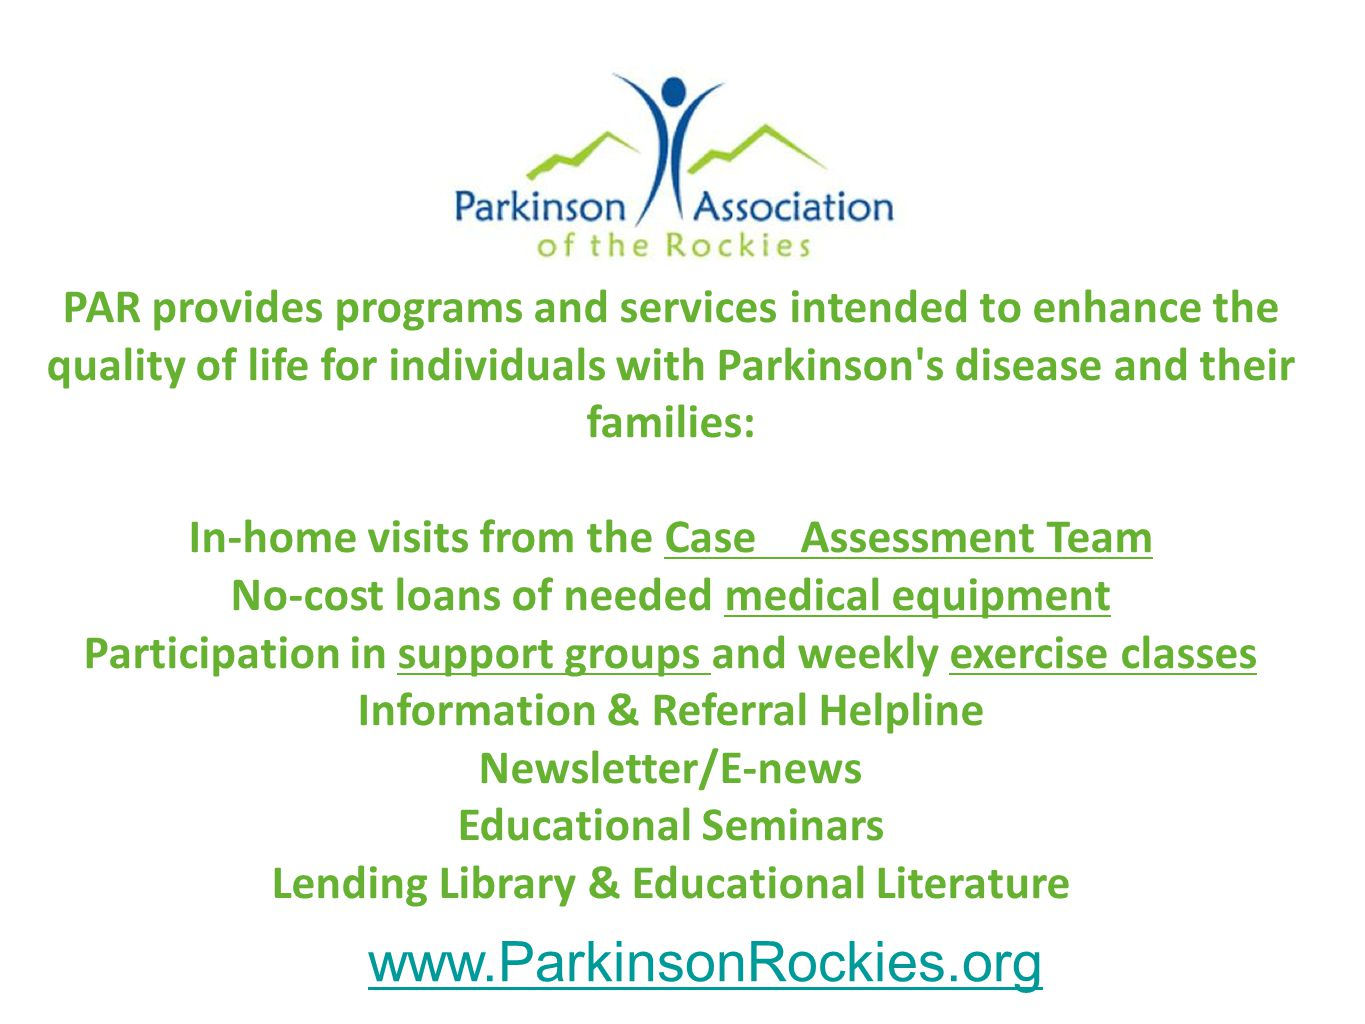 PAR provides programs and services intended to enhance the quality of life for individuals with Parkinson s disease and their families: In-home visits from the Case Assessment Team No-cost loans of needed medical equipment Participation in support groups and weekly exercise classes Information & Referral Helpline Newsletter/E-news Educational Seminars Lending Library & Educational Literature www.ParkinsonRockies.org